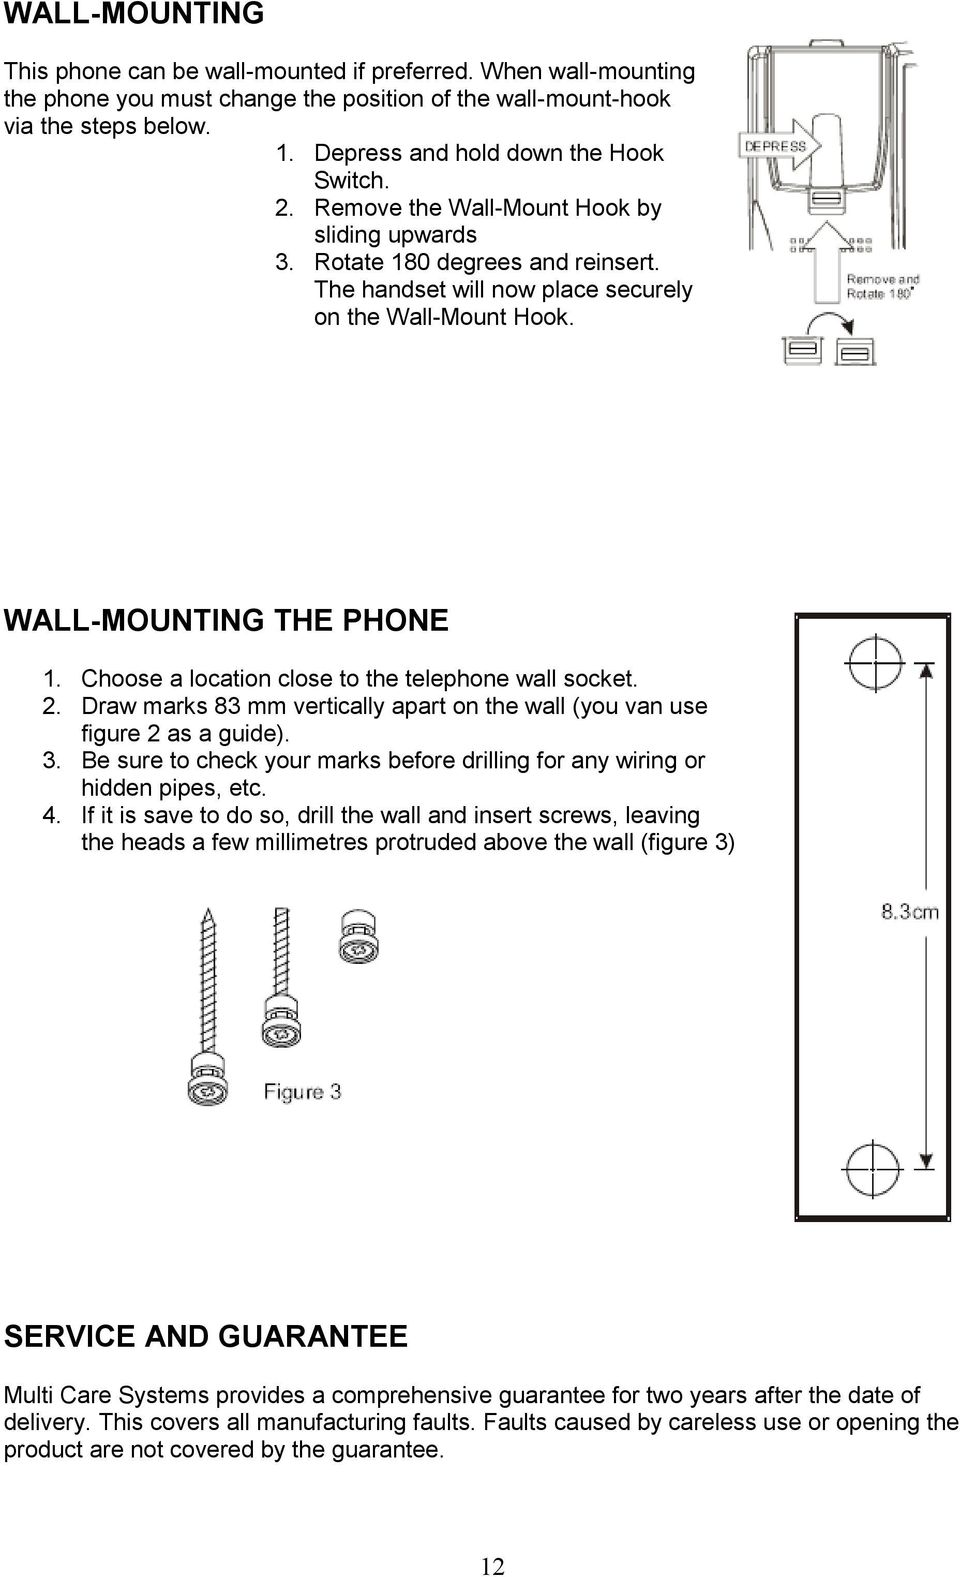 WALL-MOUNTING THE PHONE 1. Choose a location close to the telephone wall socket. 2. Draw marks 83 mm vertically apart on the wall (you van use figure 2 as a guide). 3.